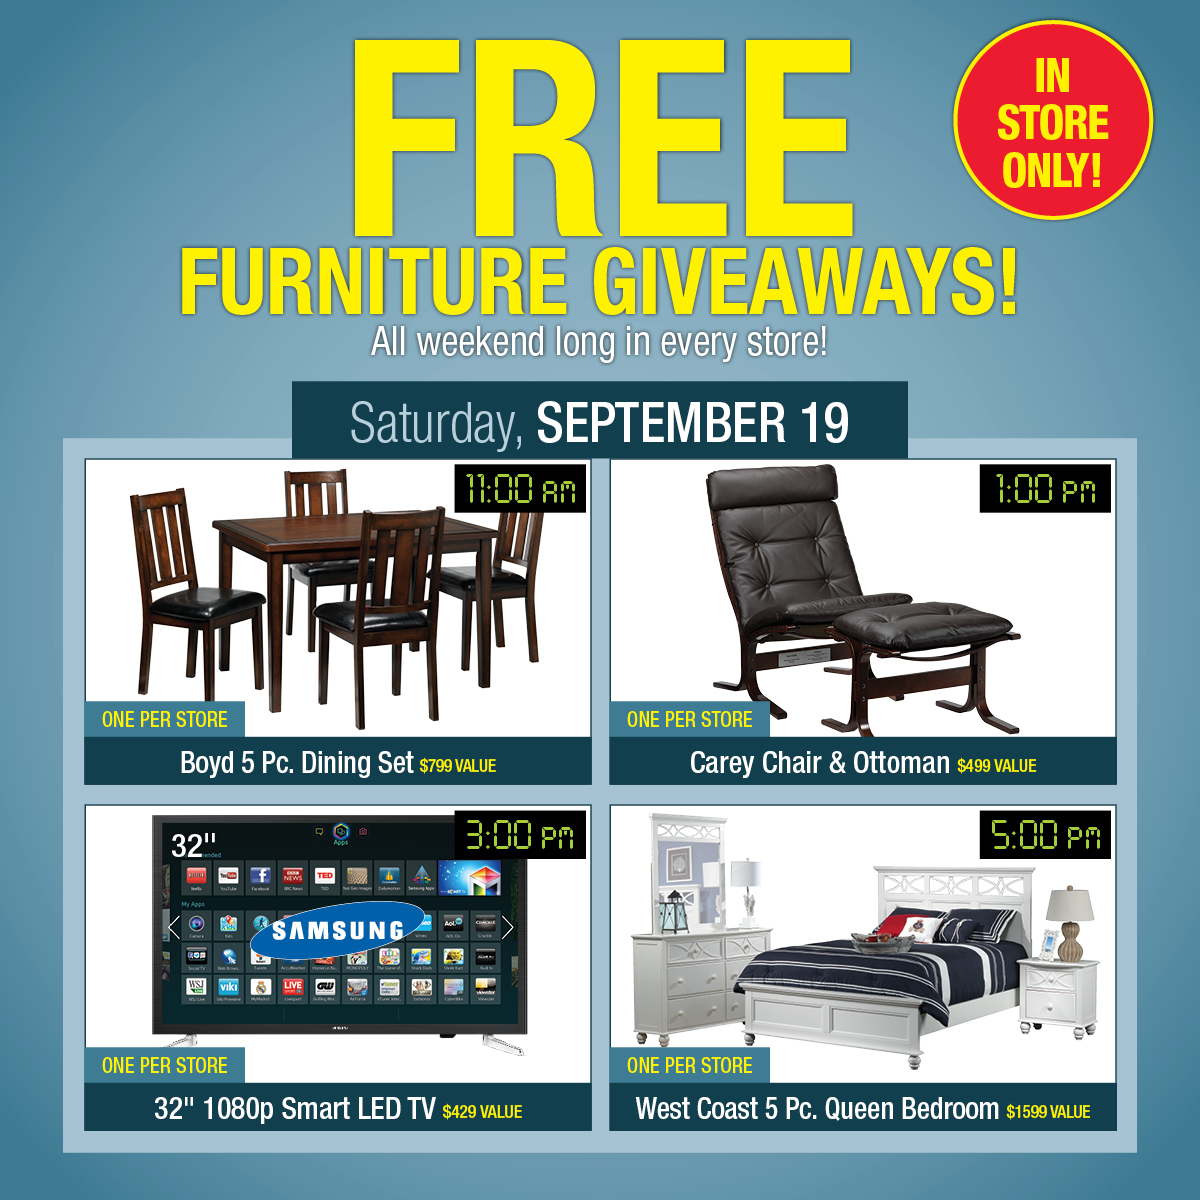 Exceptional FREE Furniture Giveaways On Friday And Saturday U2013 IN STORE